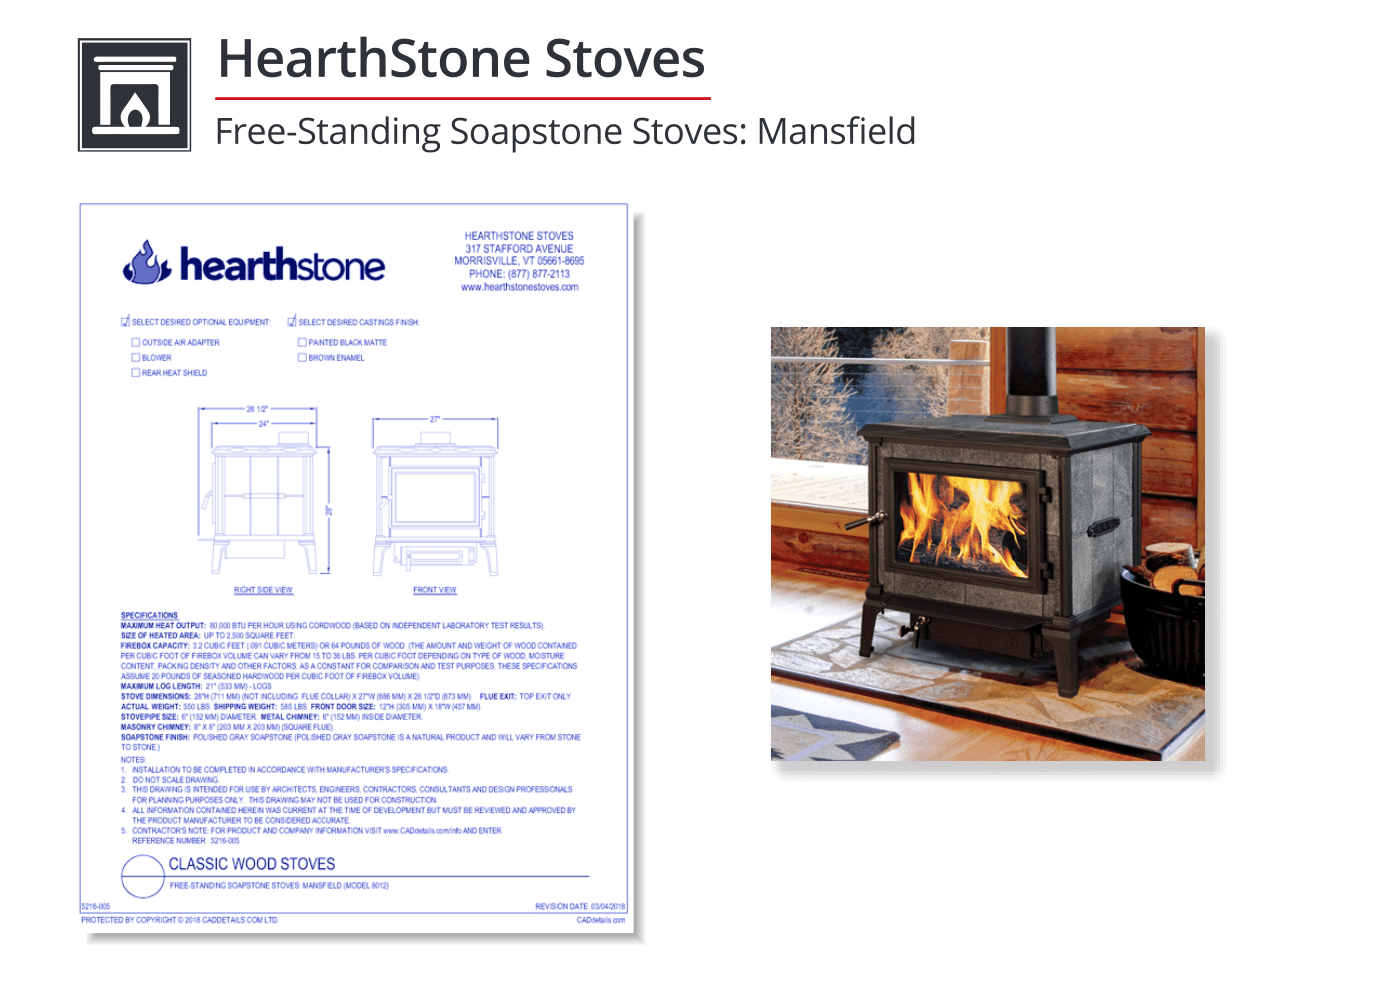 HearthStone-Stoves-Mansfield-Soapstone-Stoves-CADdrawing.png